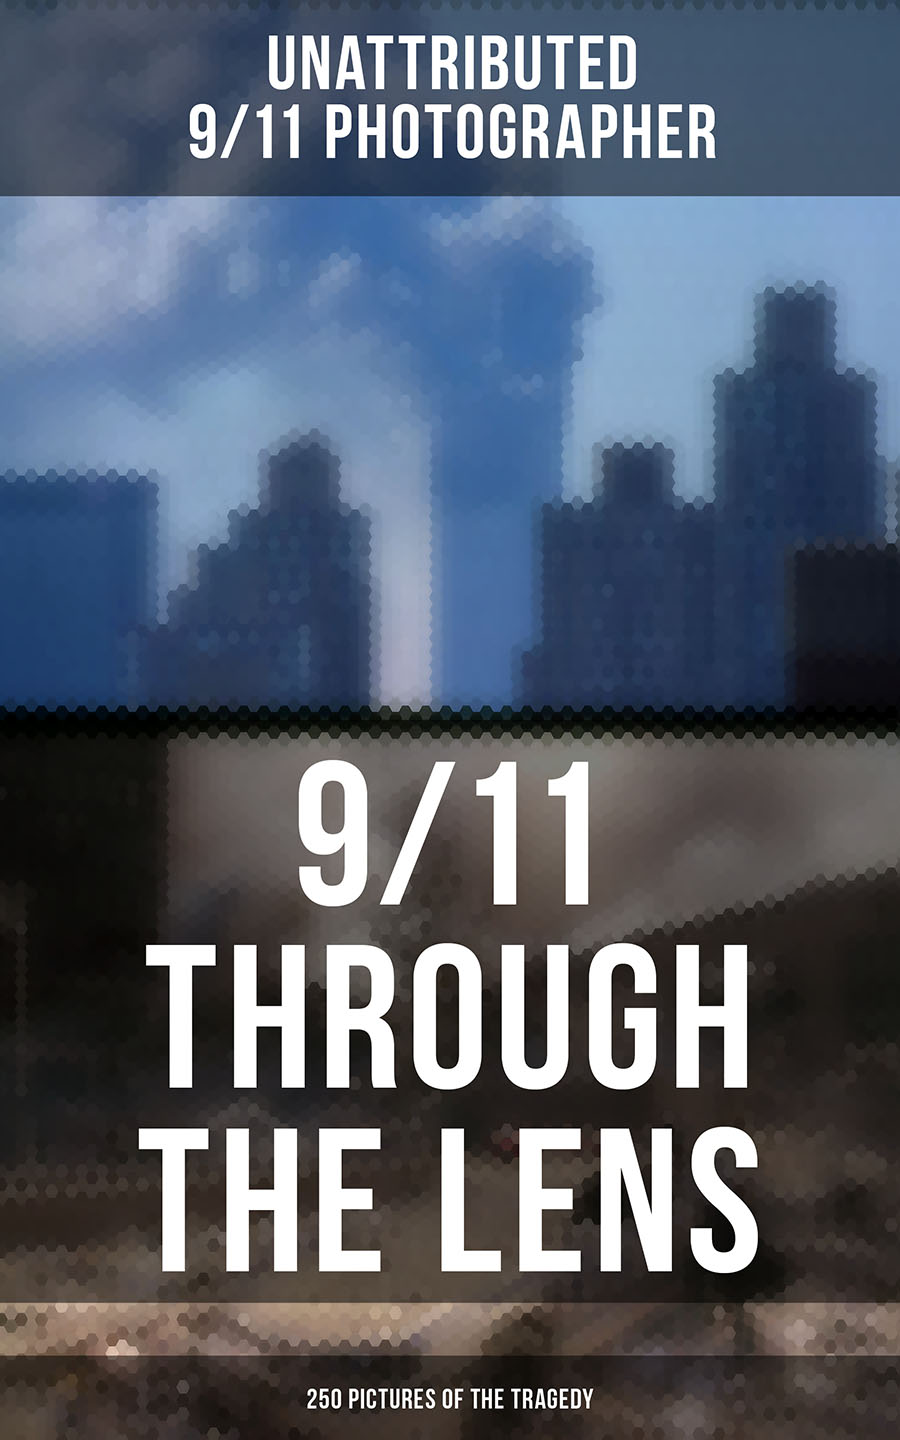 Unattributed 9/11 Photographer 9/11 THROUGH THE LENS (250 Pictures of the Tragedy) the wallflower 9